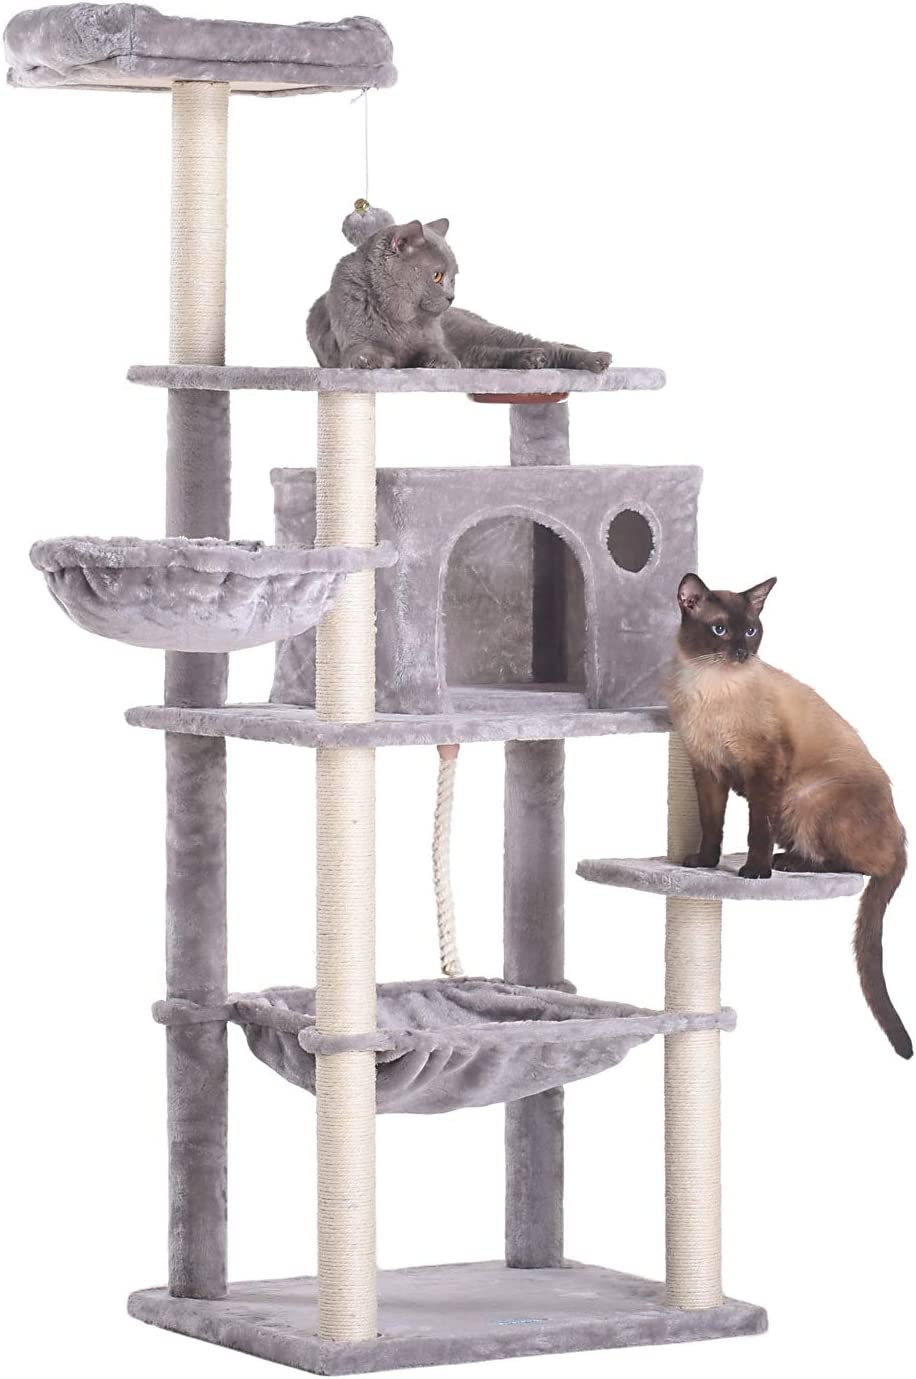 Hey-Brother Extra Big Cat Tree with Feeding Bowl, Cat Condos with Sisal Poles, Hammock and Cave, Padded Platform, Climbing Tree for Cats, Anti-toppling Devices